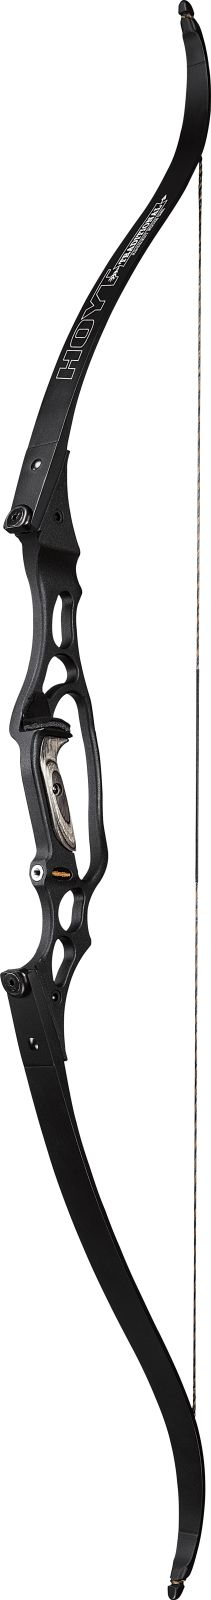 Hoyt Gamemaster: Archery in its purist form. Technology and tradition coexist to the fullest in these great bows. GameMaster II bridges the gap between high-tech and hard-core tradition with a super-slim TEC riser, option for a sight, stabilizer and more..